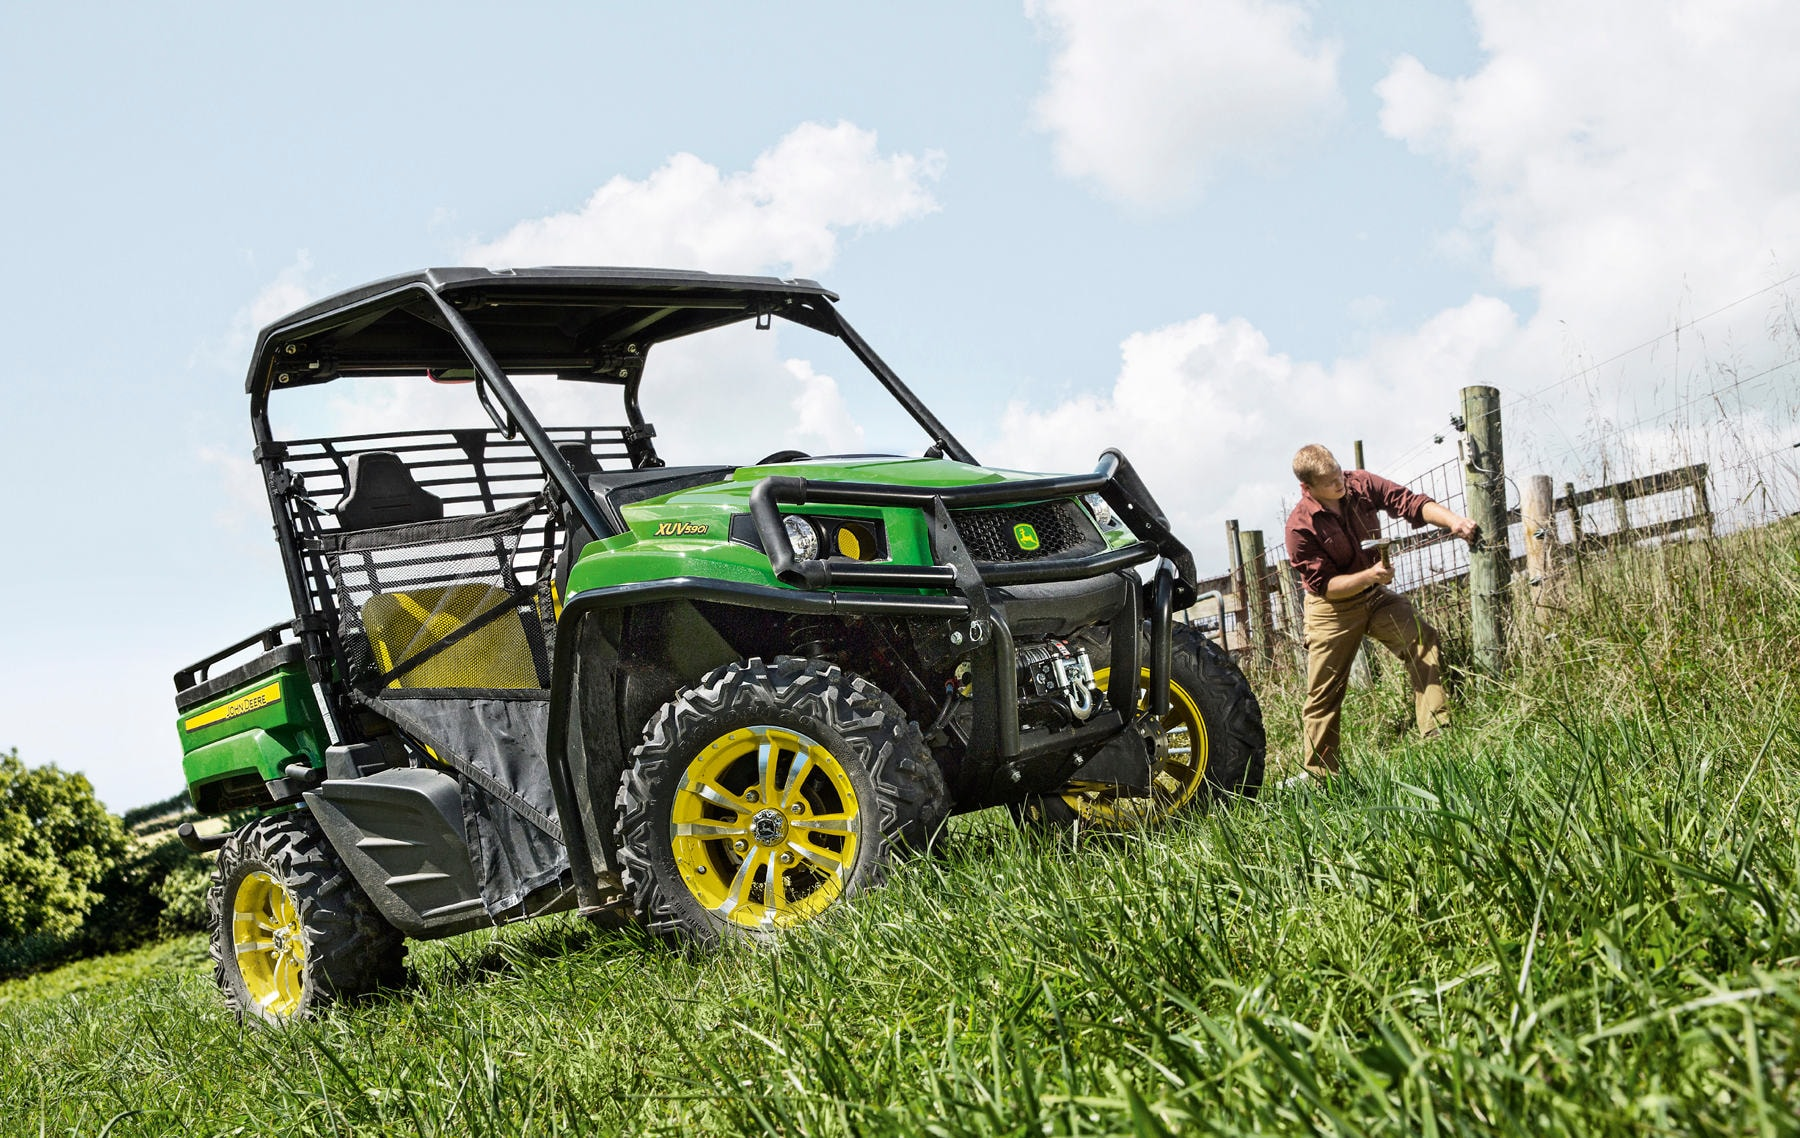 A range of XUV 5 Series Gator utility vehicles will be on display at this  year's